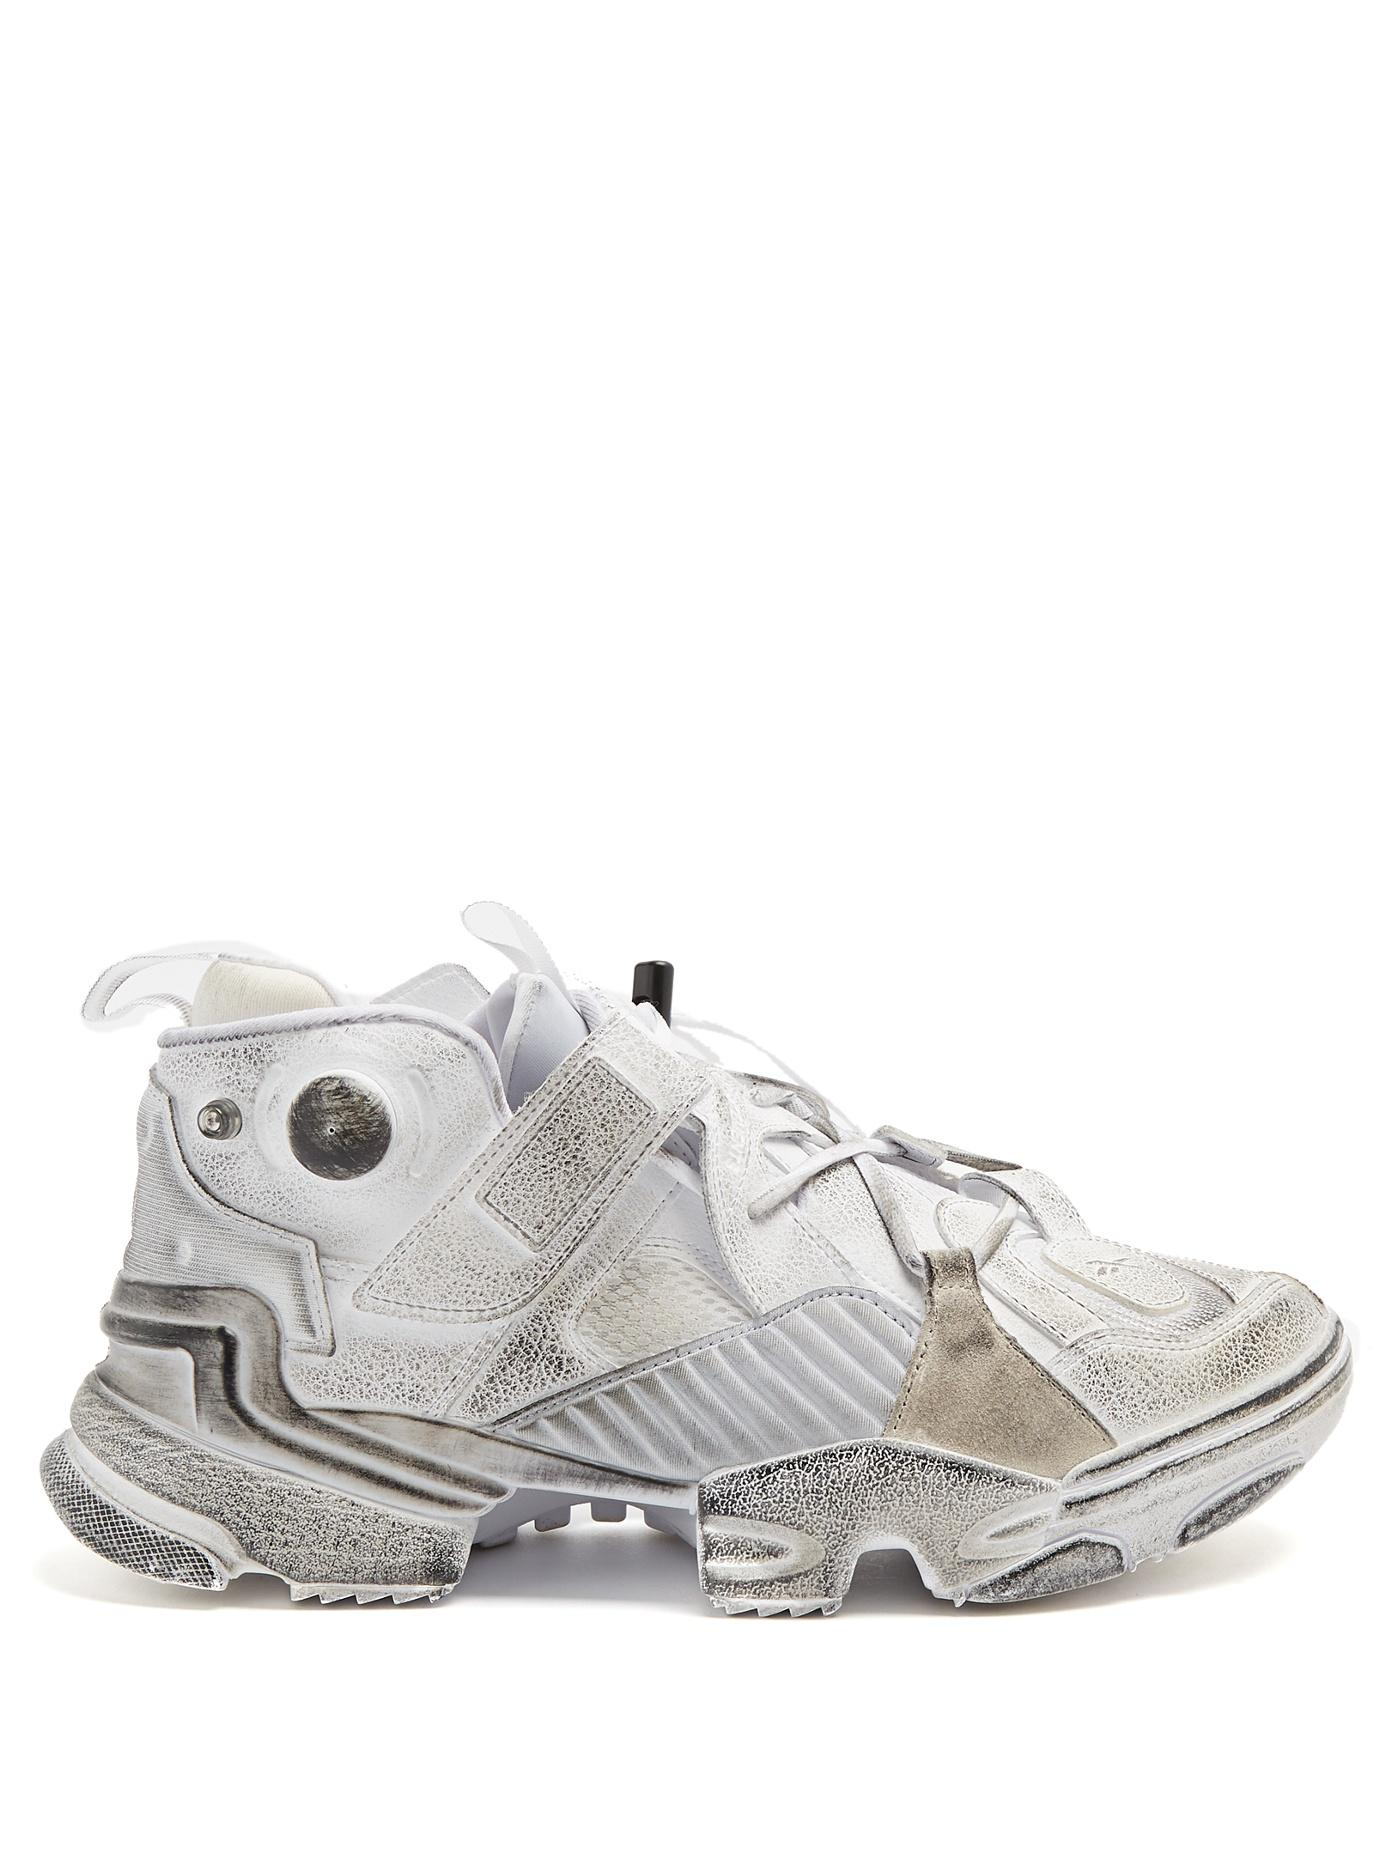 Vetements X Reebok Genetically Modified Leather Trainers In White ... e9ce4be9e